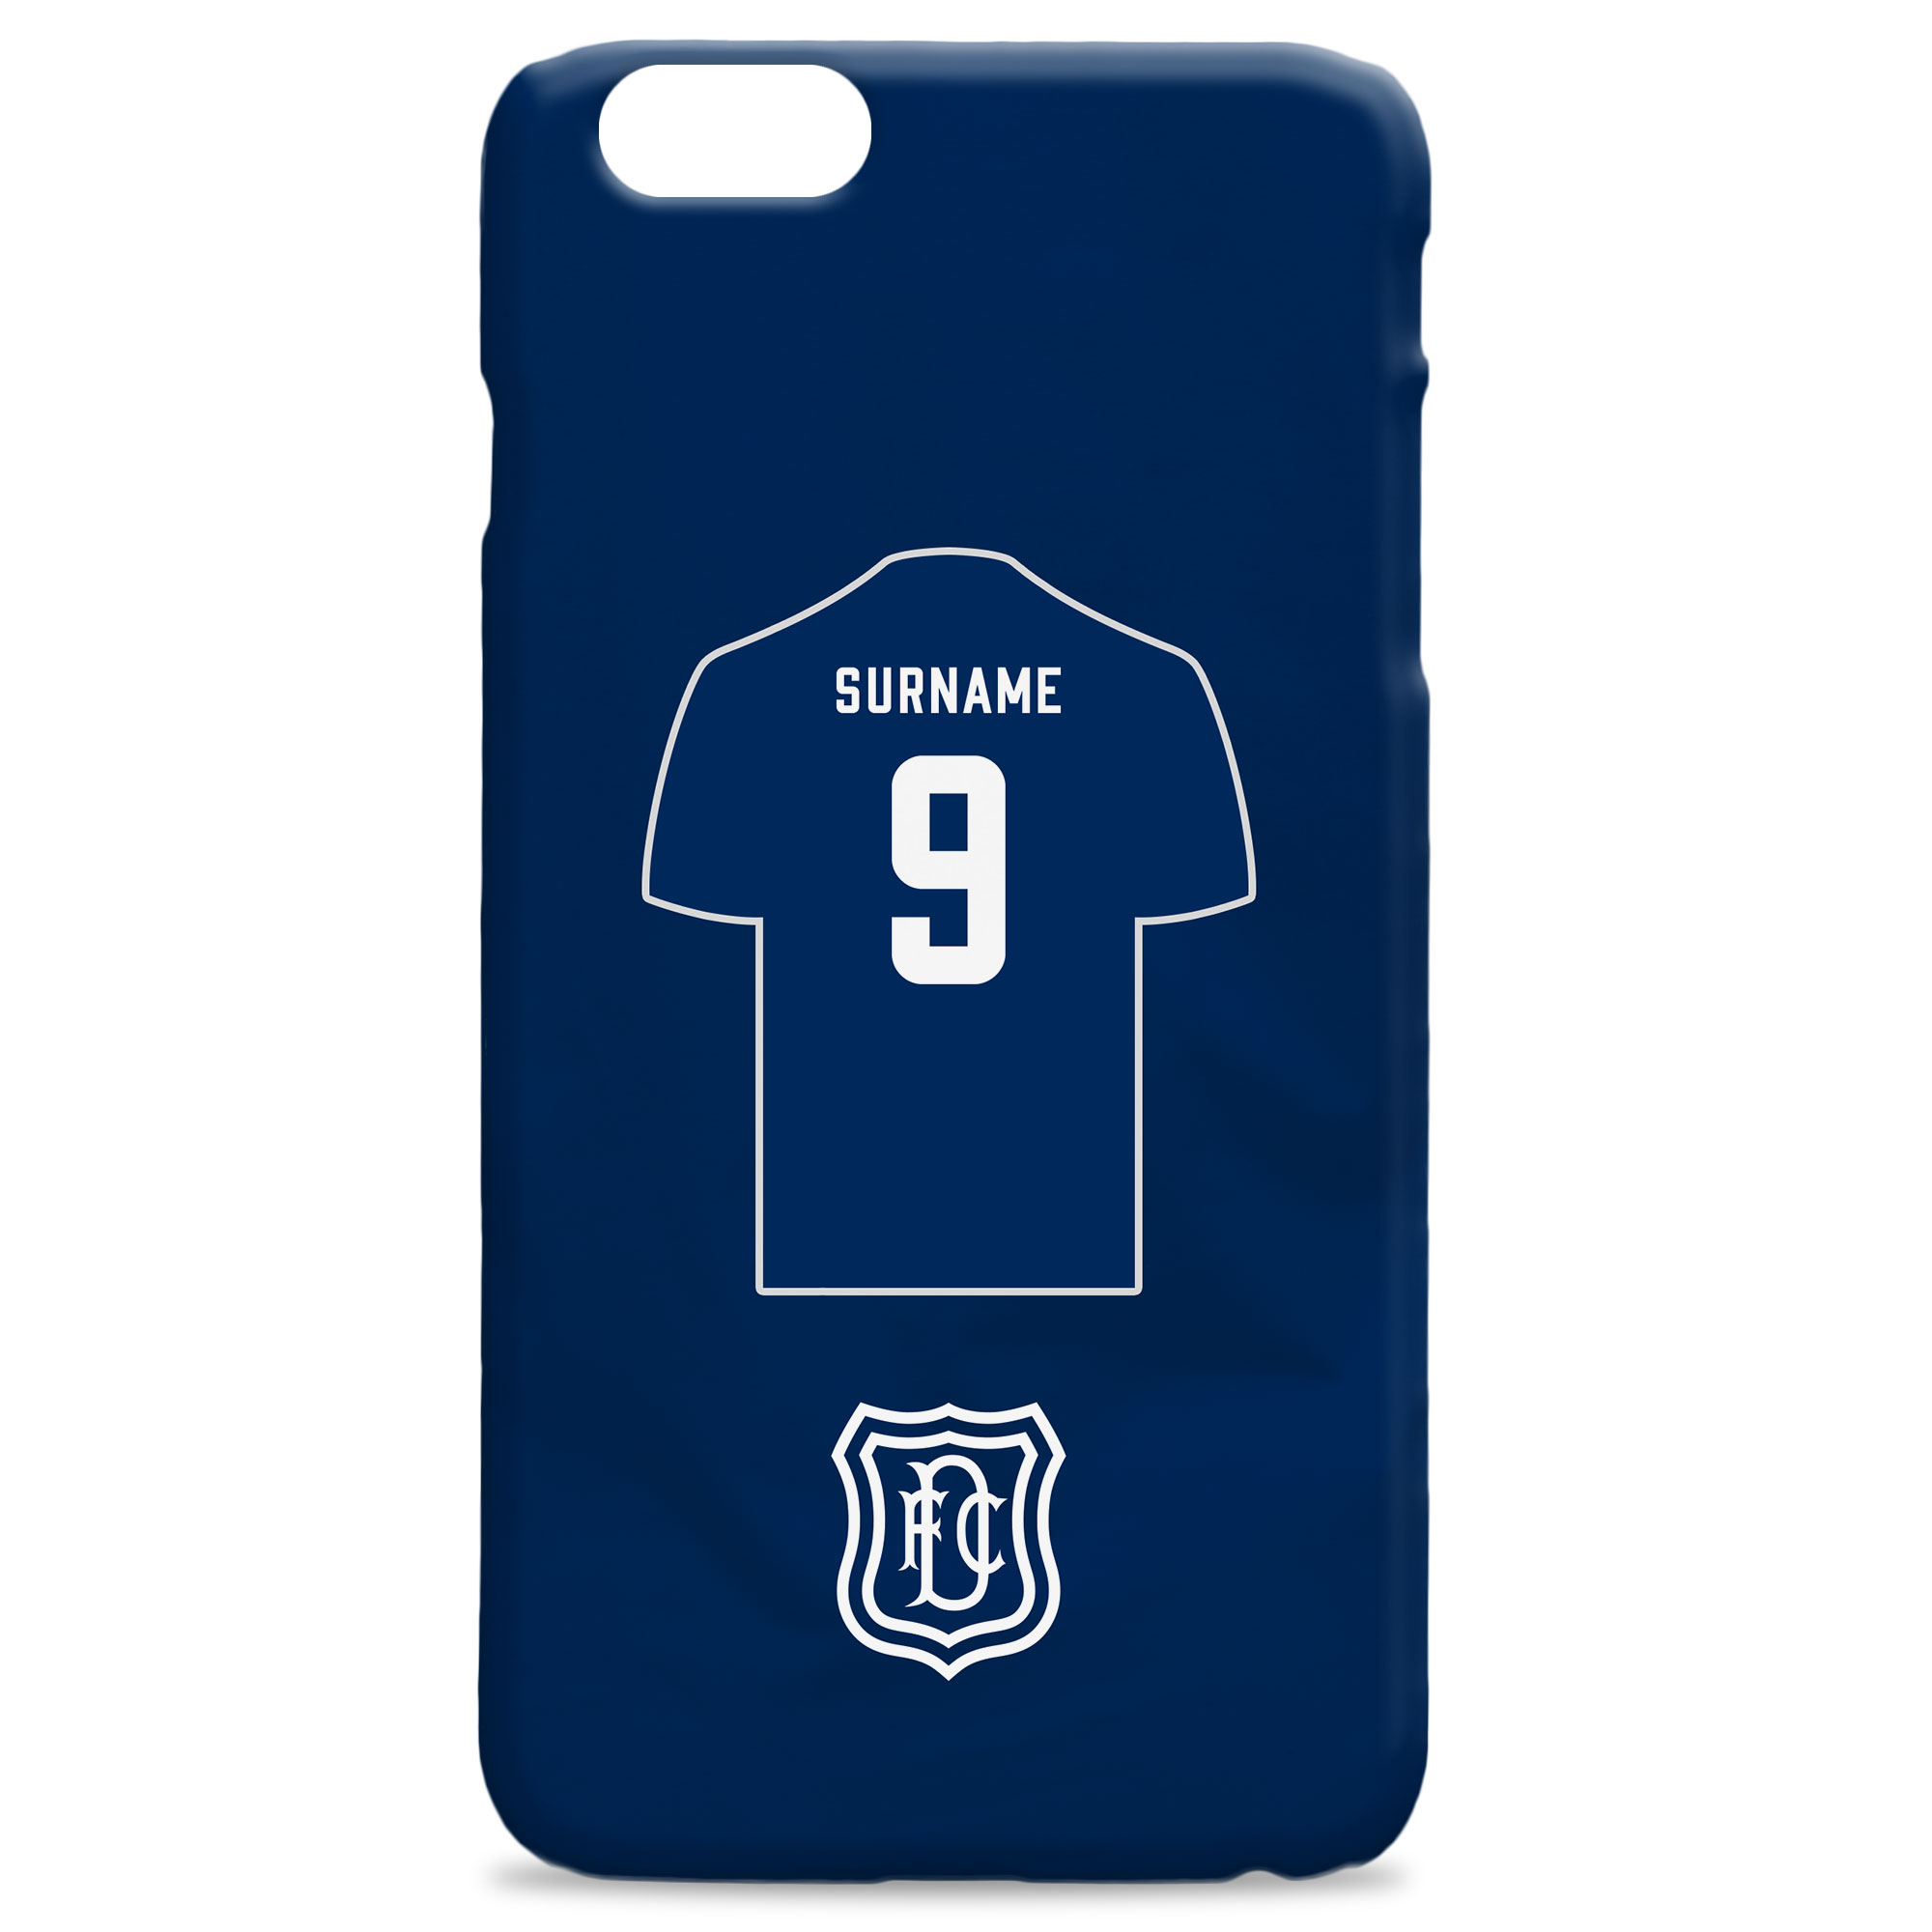 Dundee FC Shirt Hard Back Phone Case